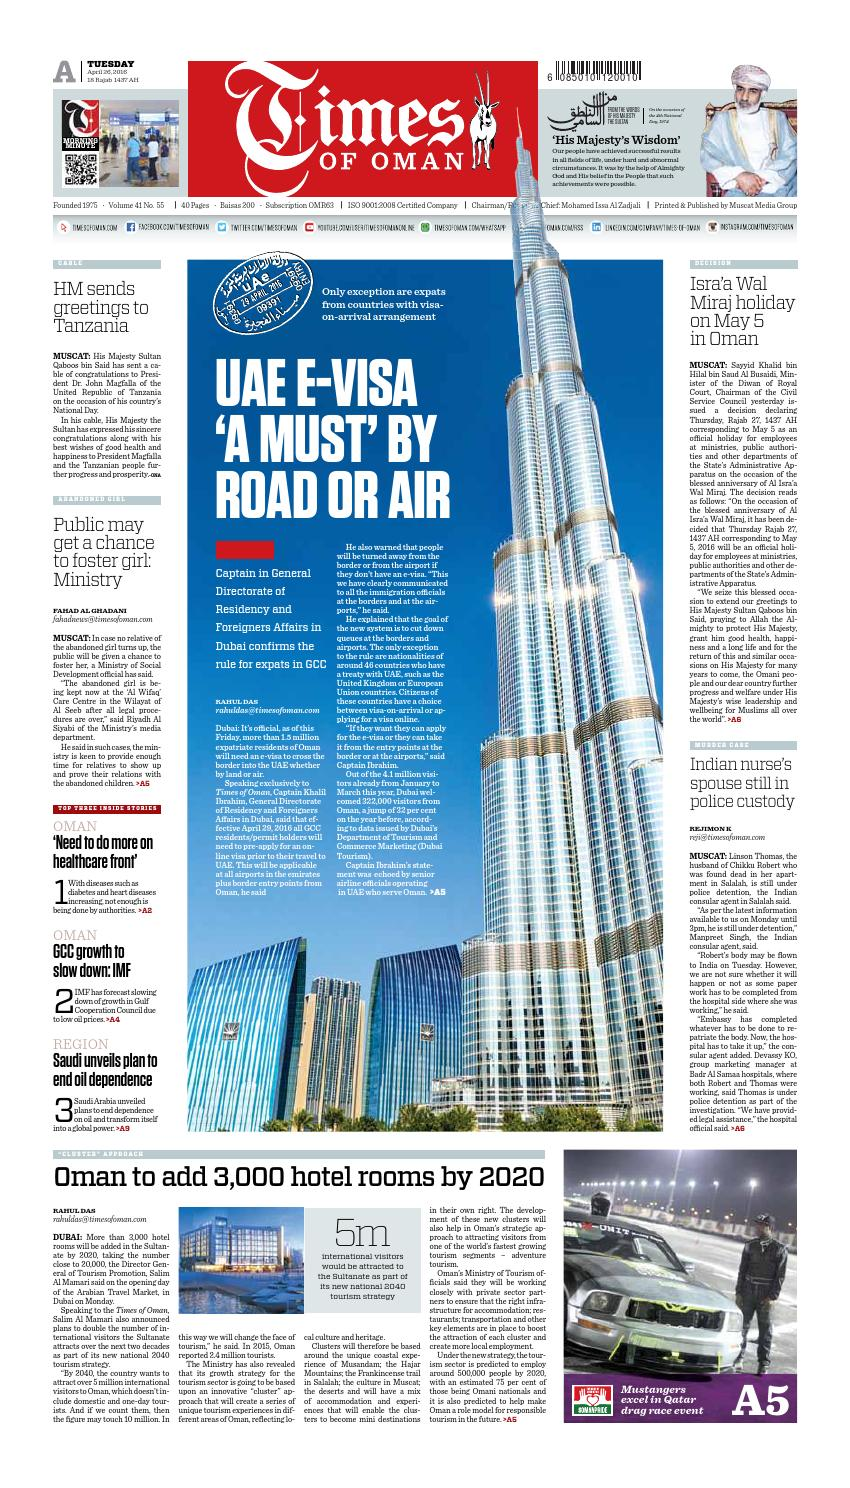 Times of Oman - April 26, 2016 by Muscat Media Group - issuu